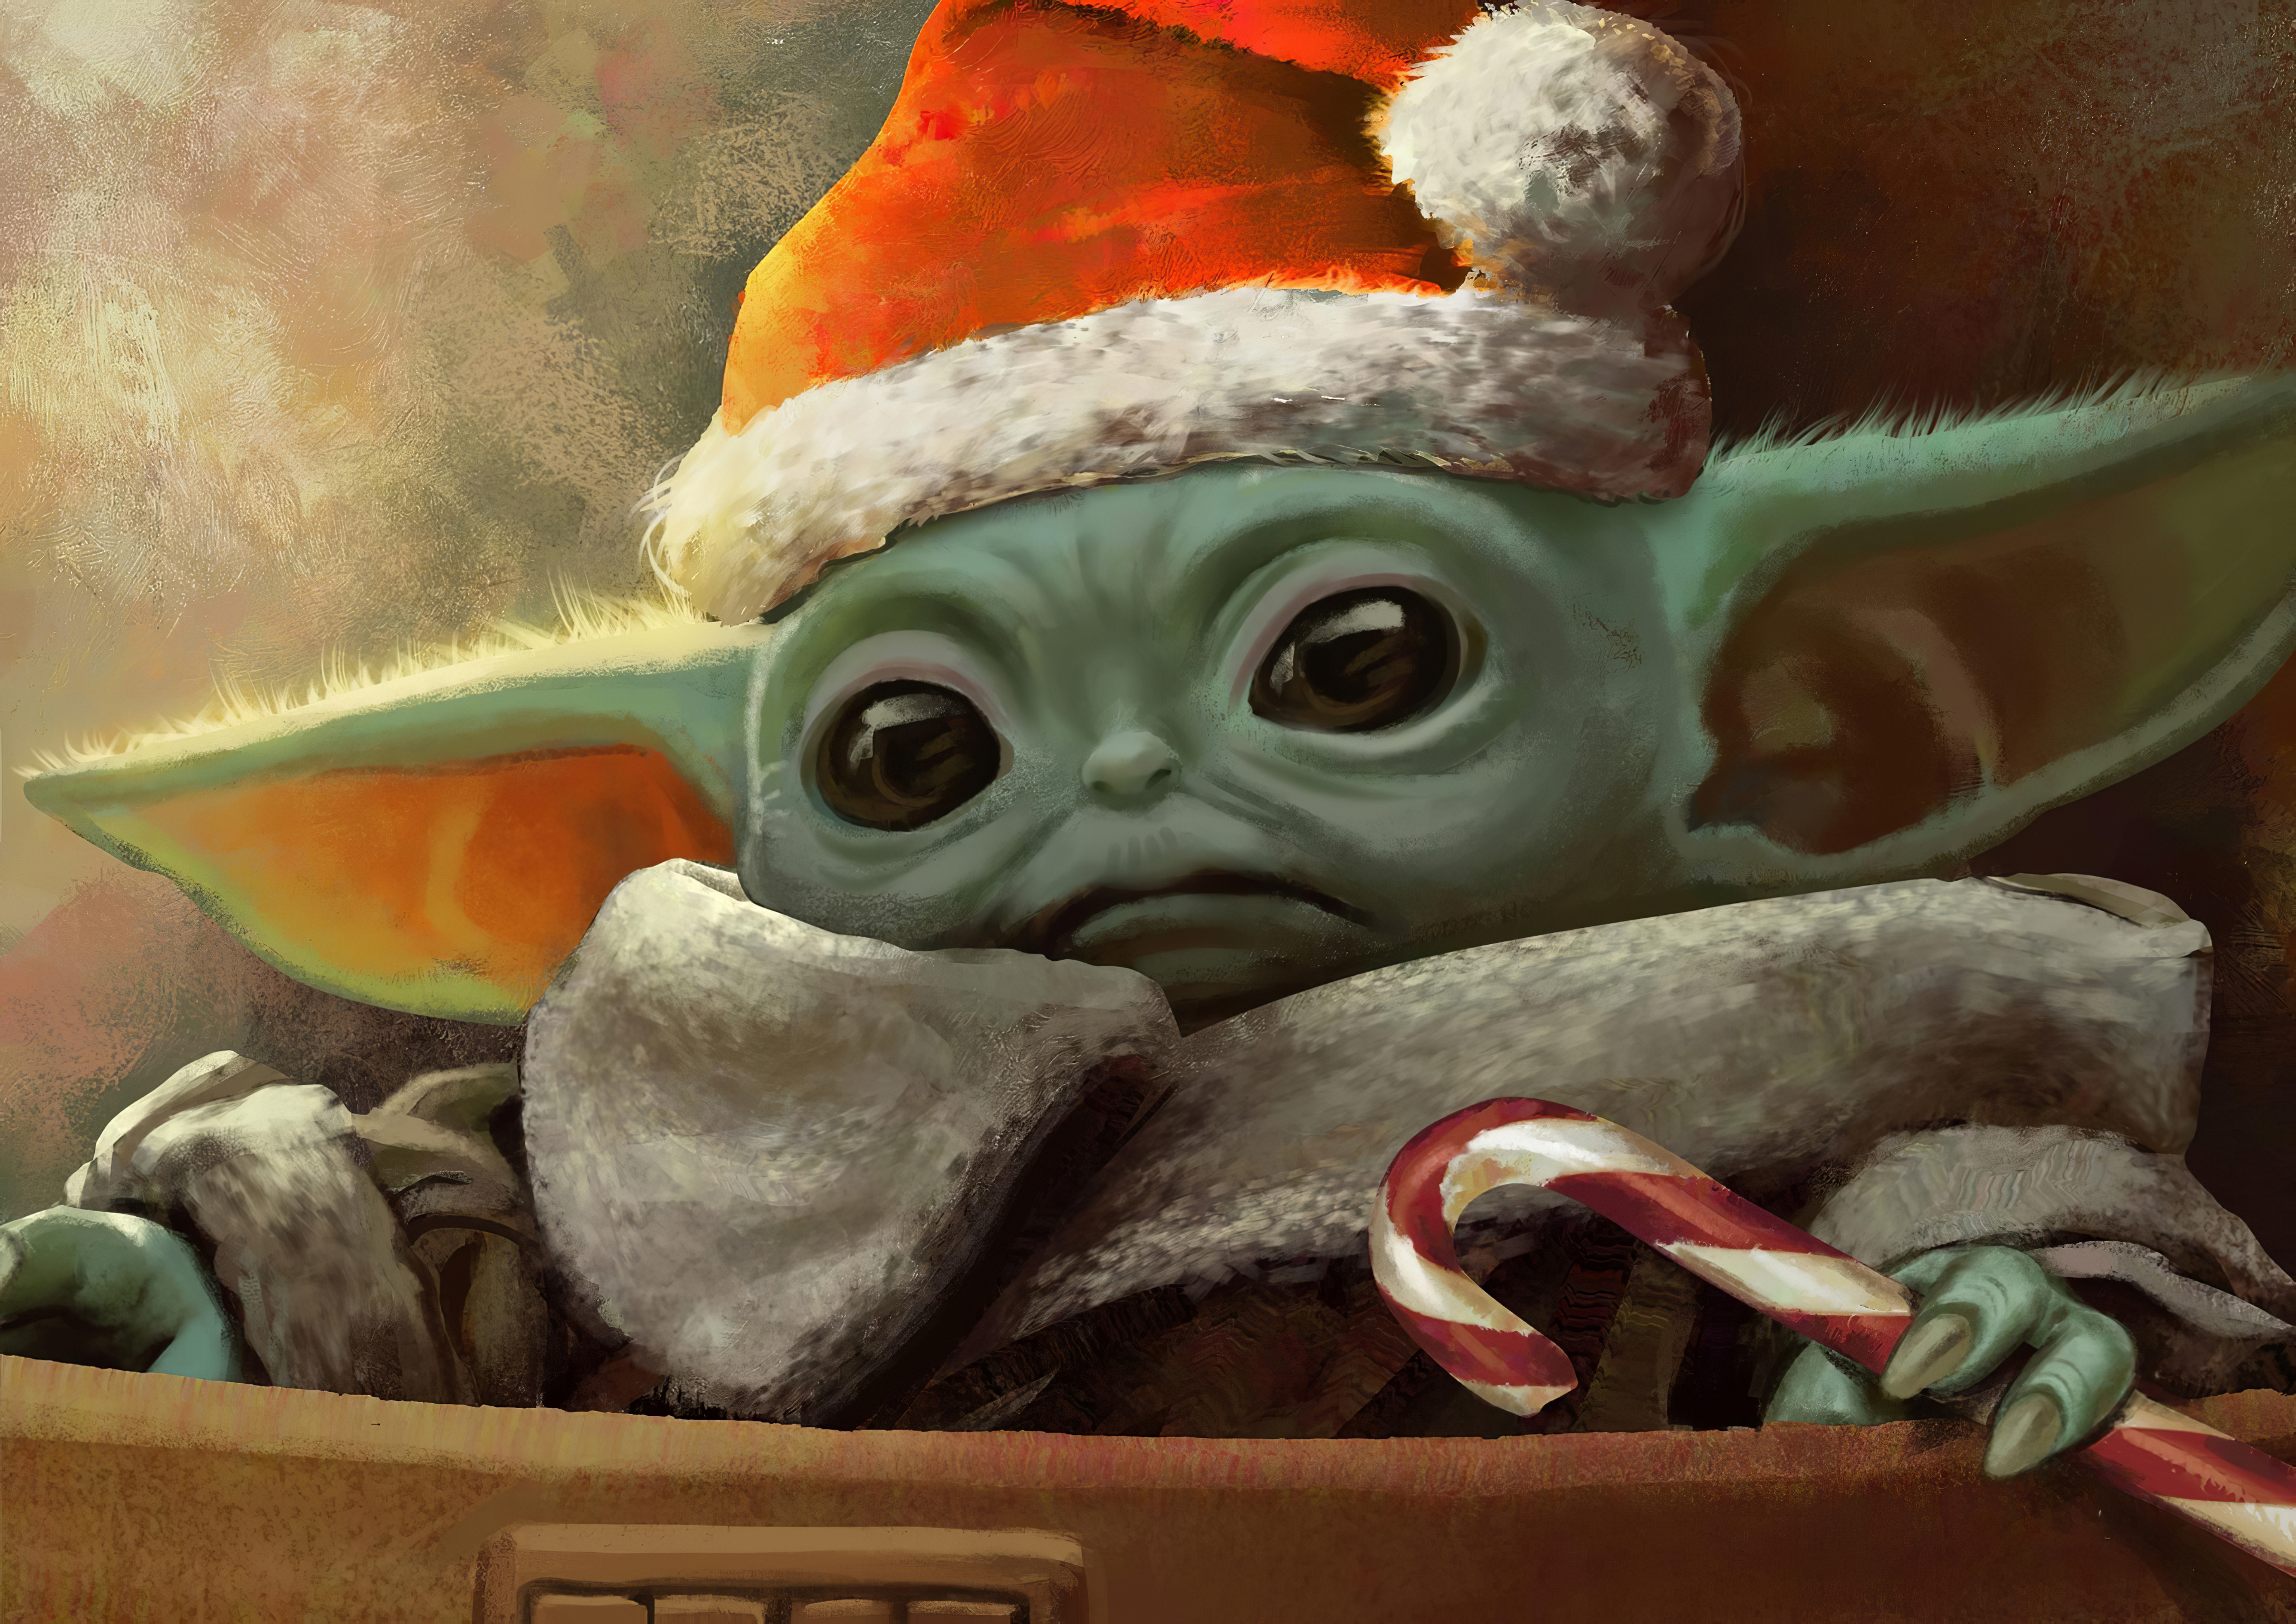 X Mas Baby Yoda 4k Hd Tv Shows 4k Wallpapers Images Backgrounds Photos And Pictures